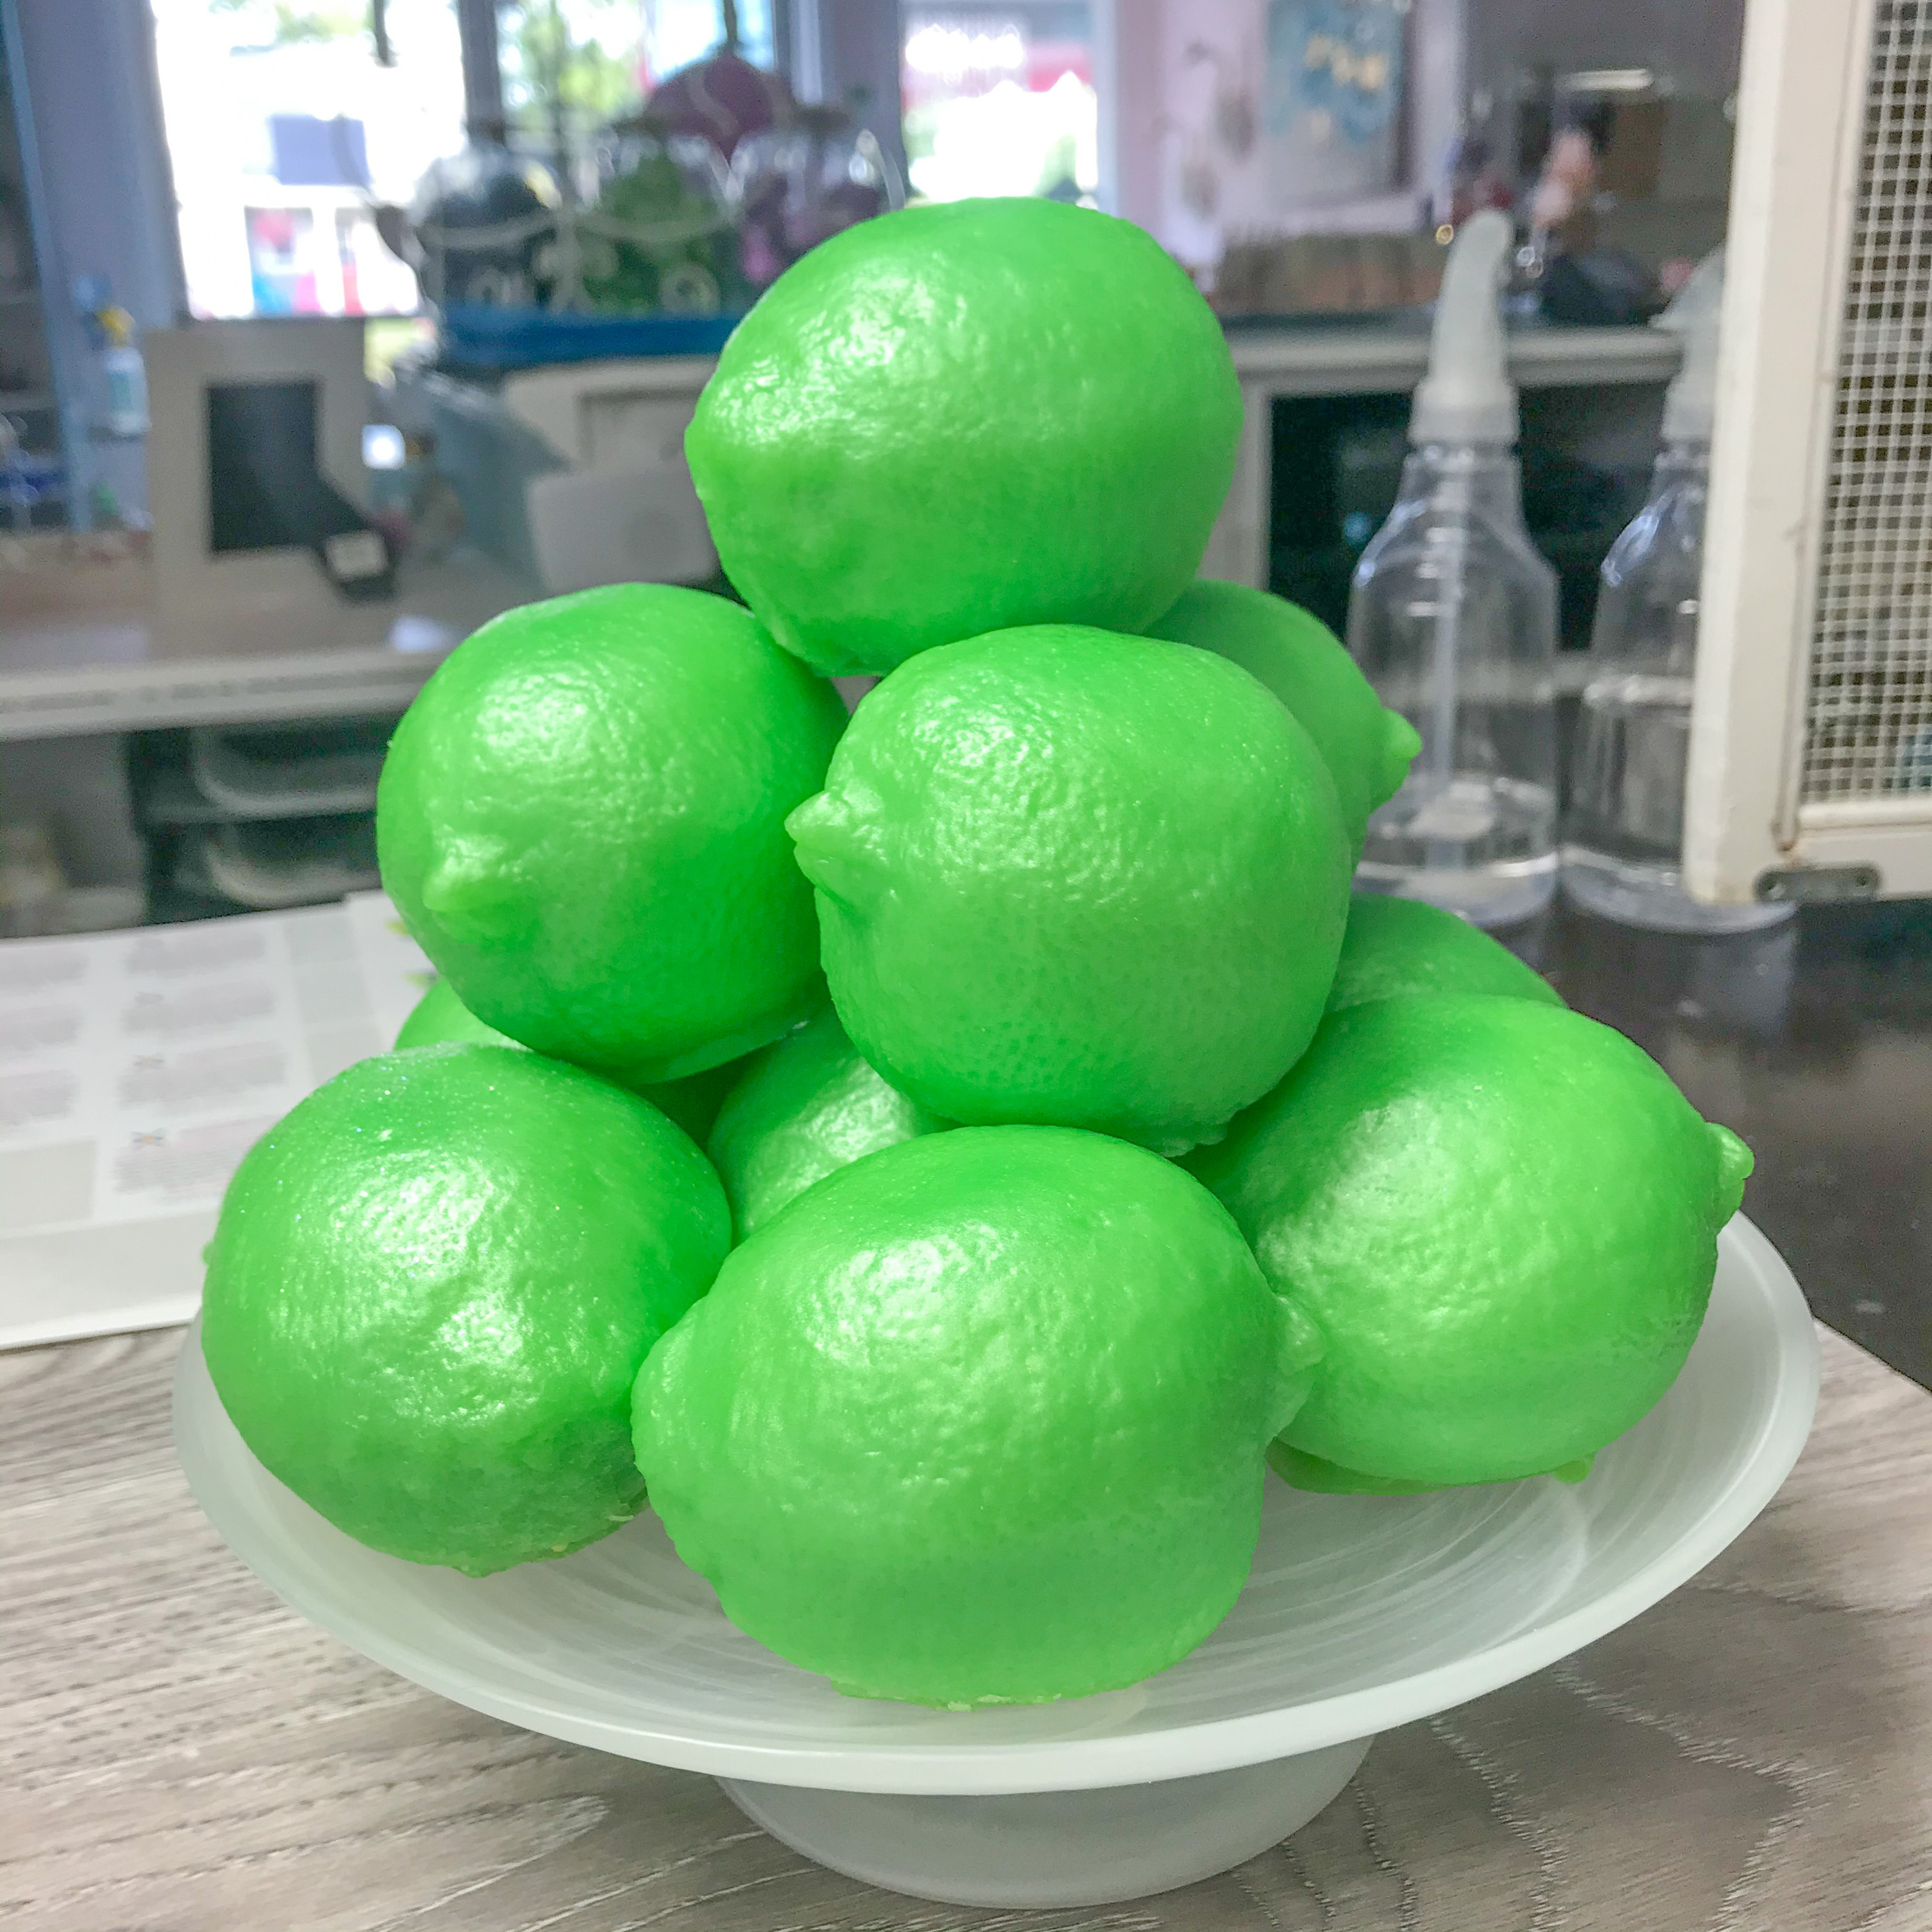 NEW! Juicy Lime Soap